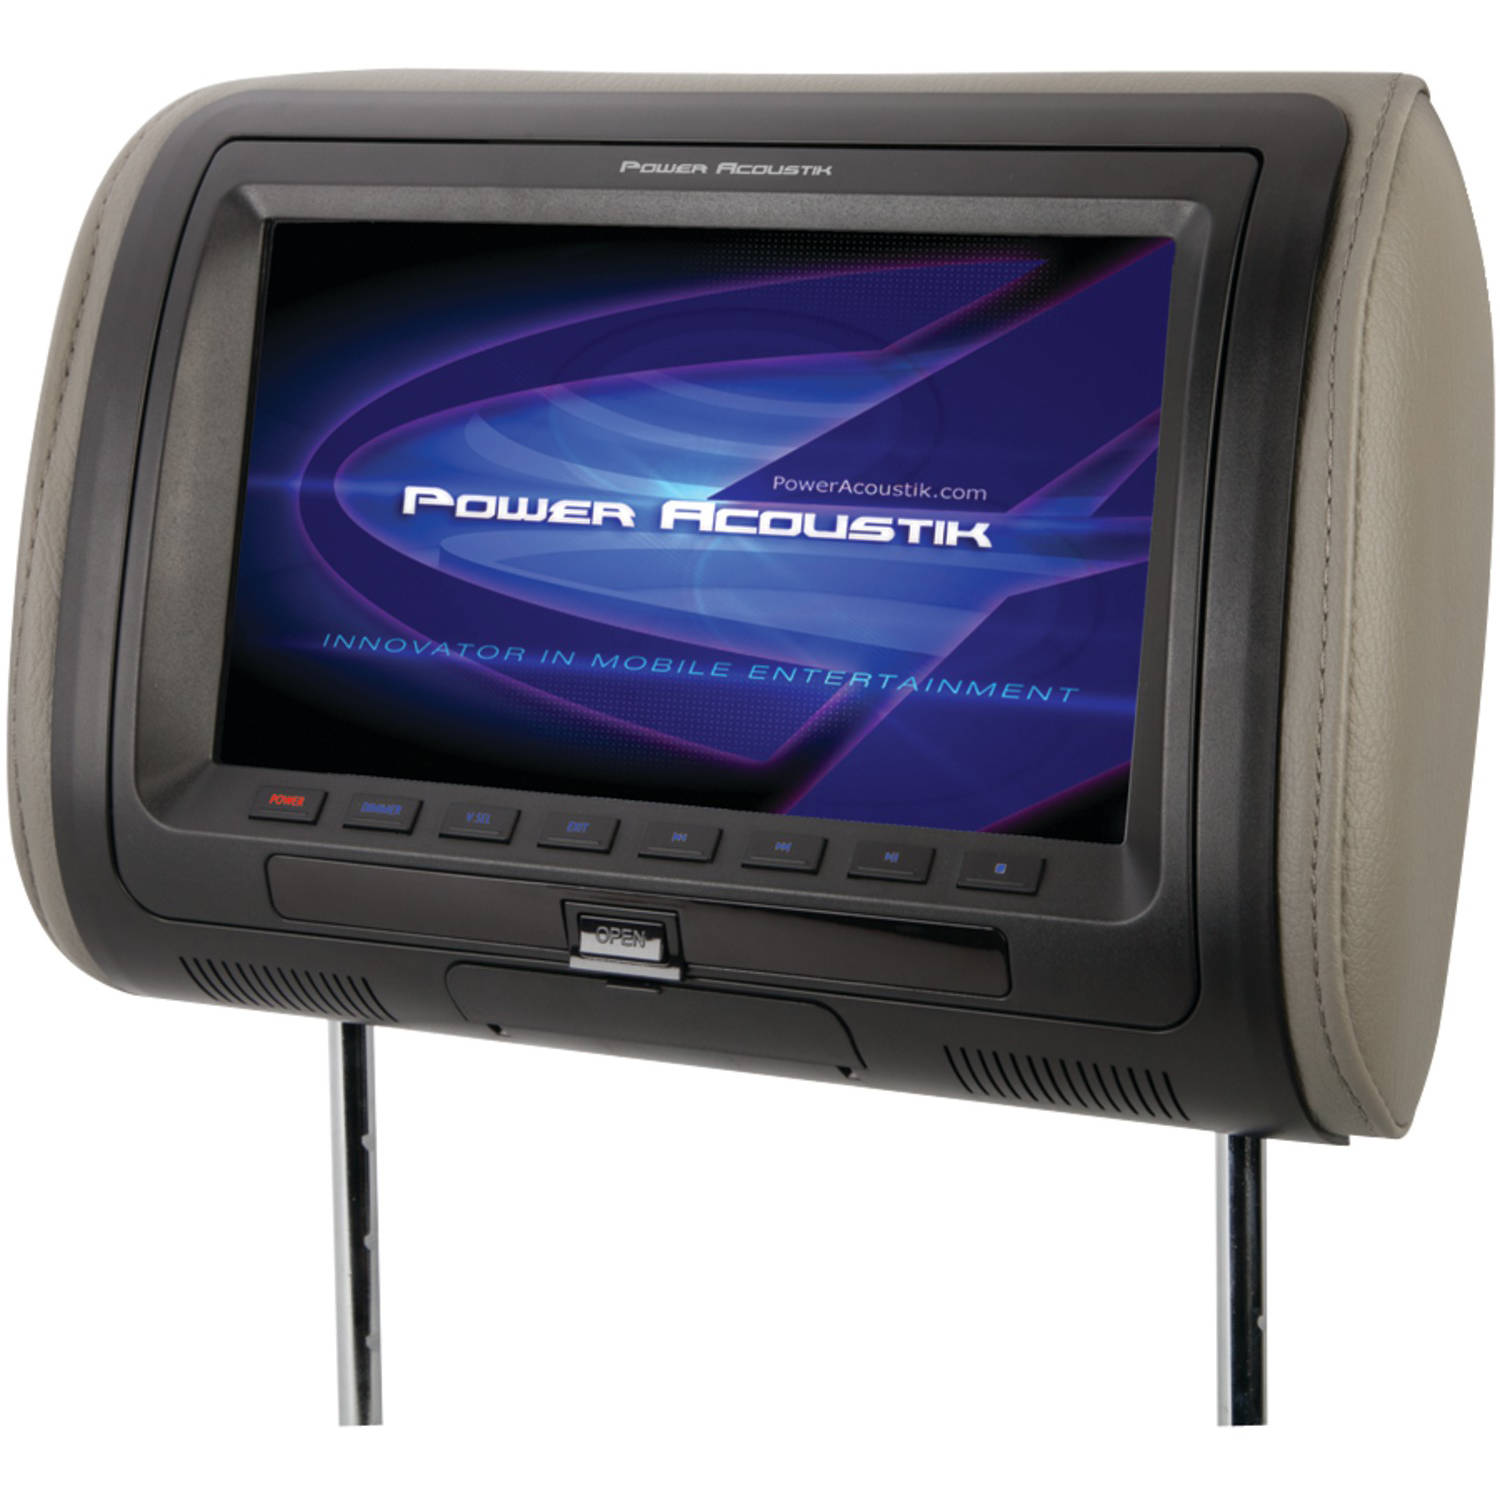 "Power Acoustik H71HD 7"" Universal Headrest Monitor with MHL MobileLink and Interchangeable Skins without DVD Player"